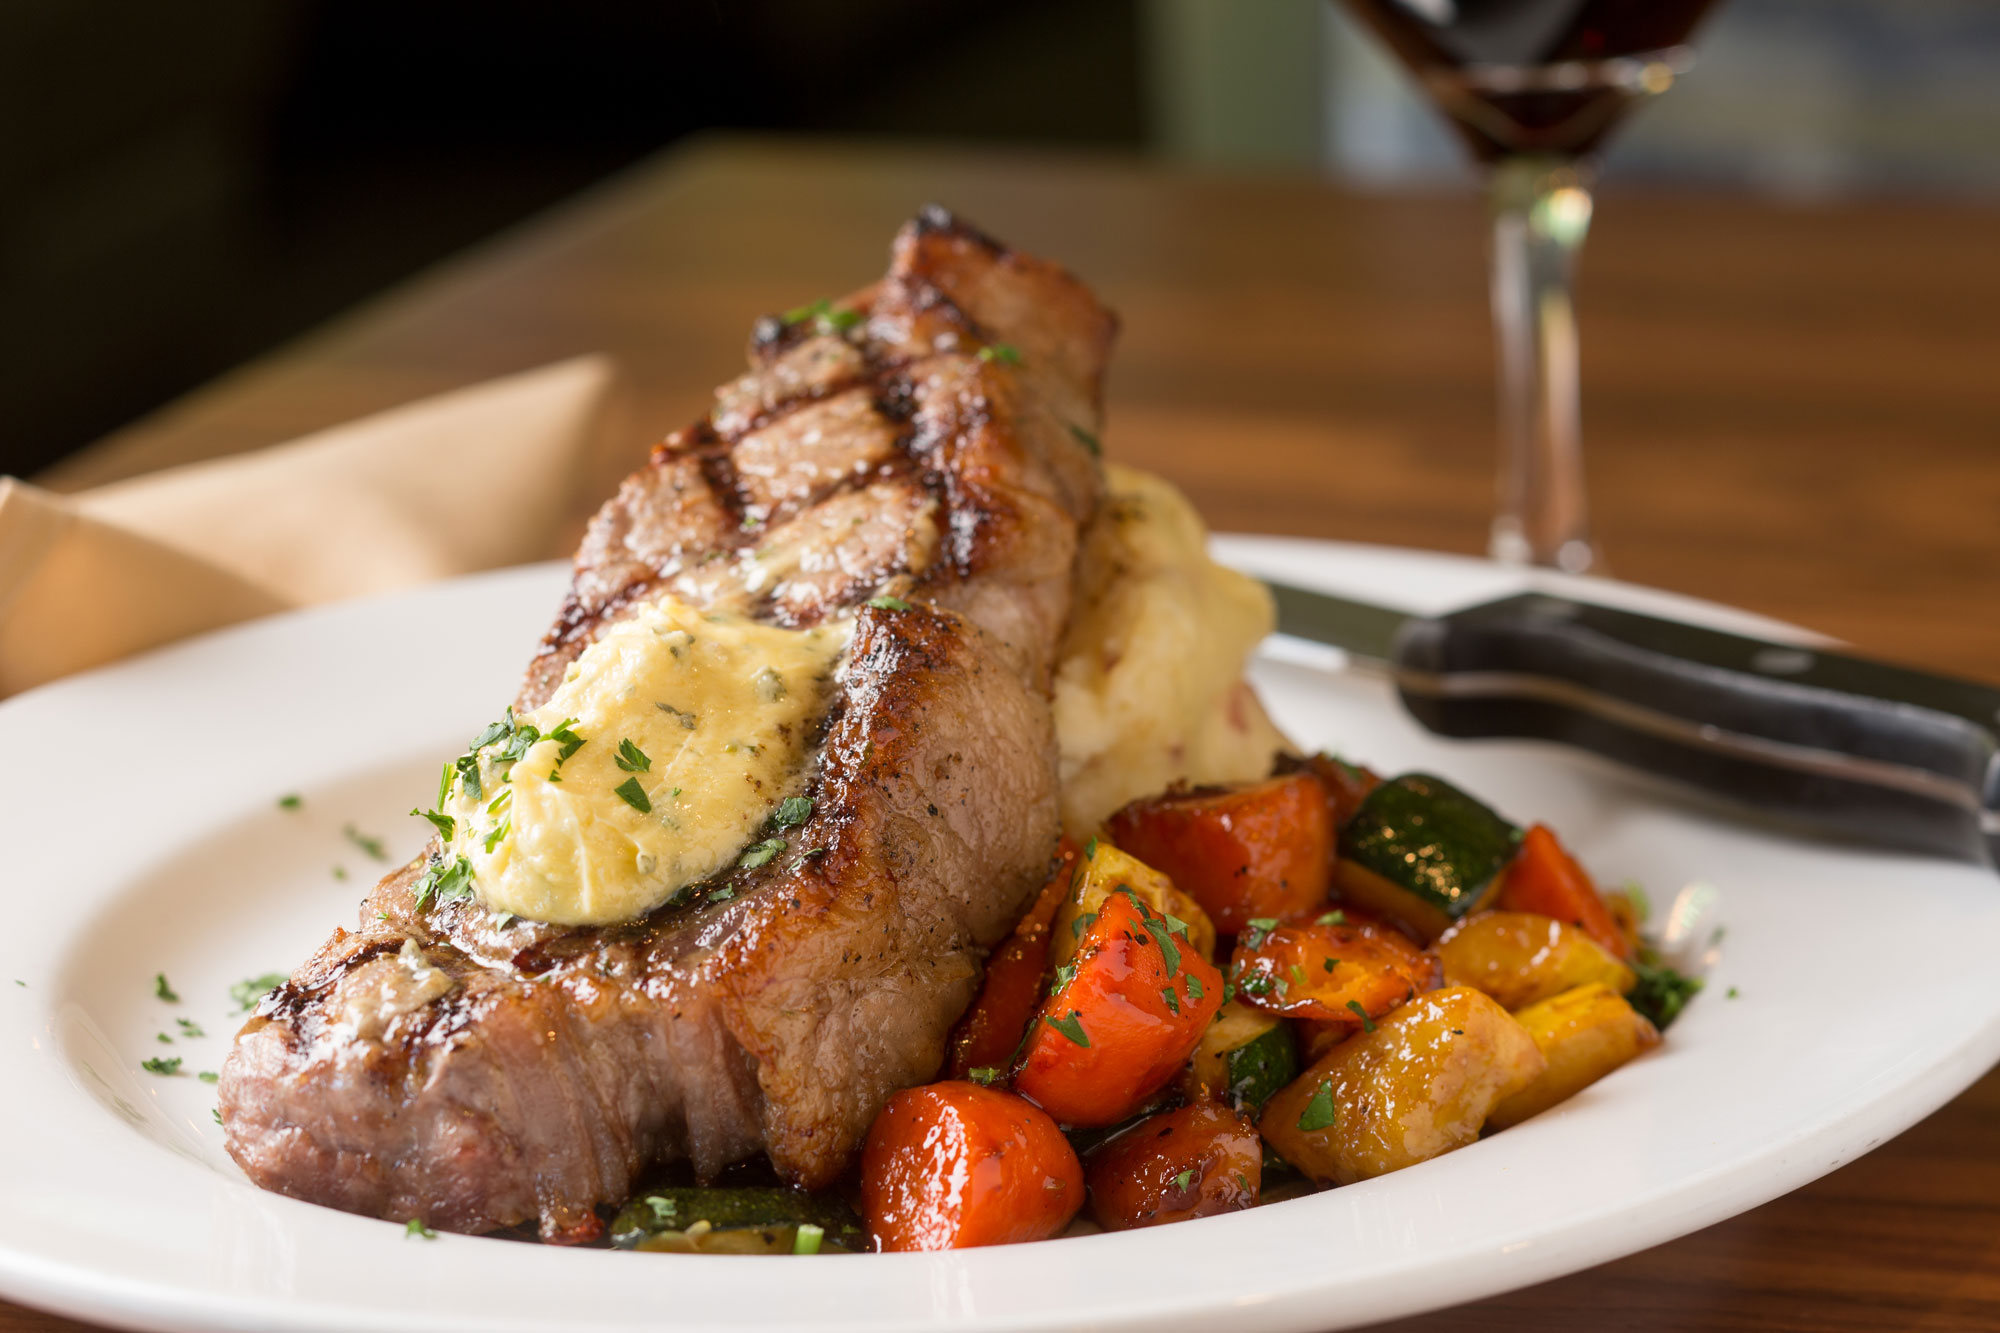 steak with mash potatoes and vegetables